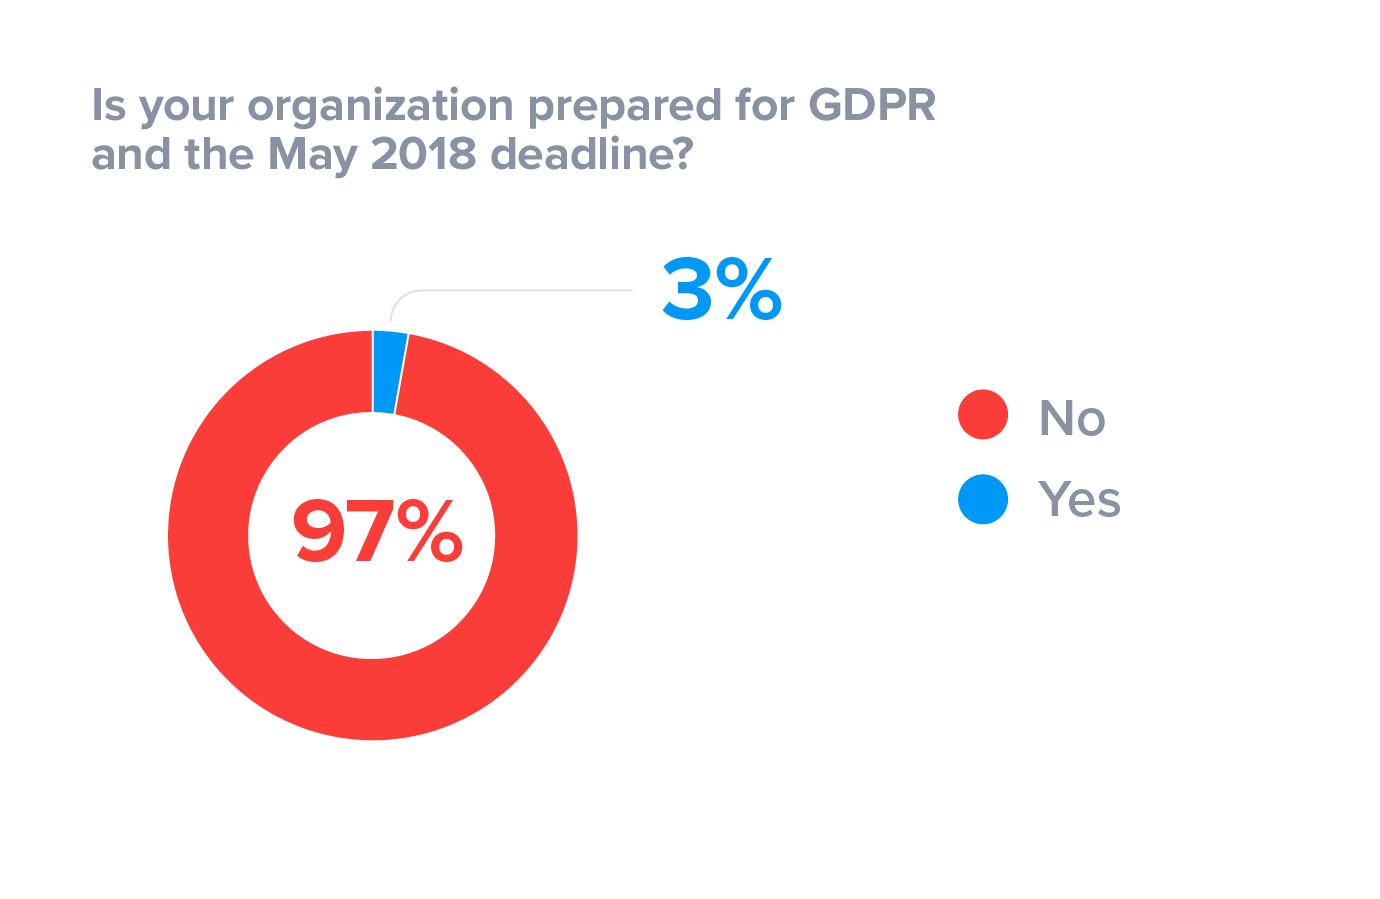 Is your organization prepared for GDPR and the May 2018 deadline?